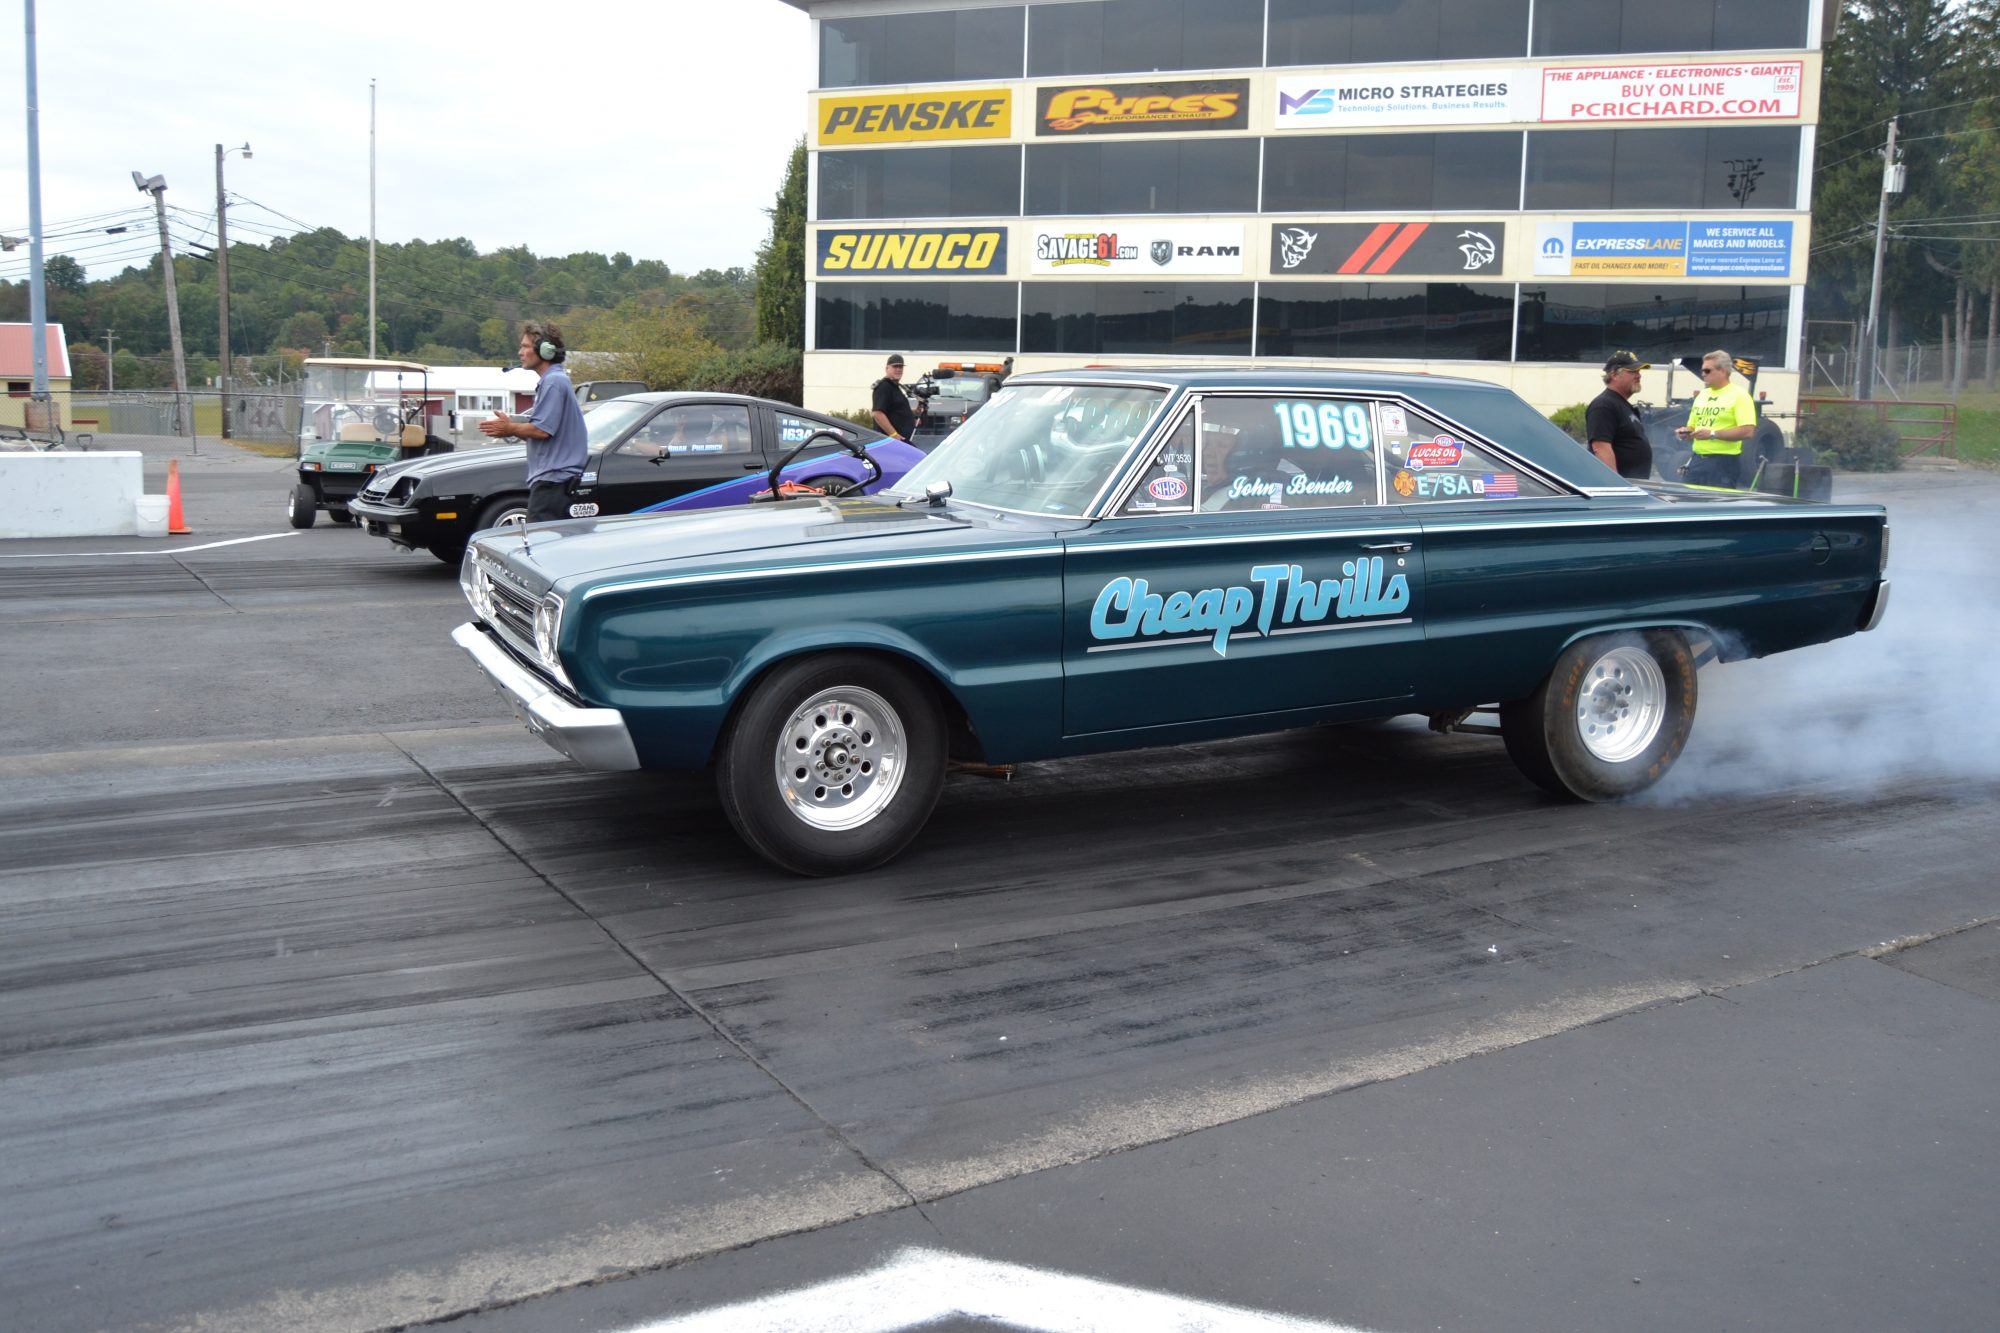 1967 Plymouth Satellite drag racing another car